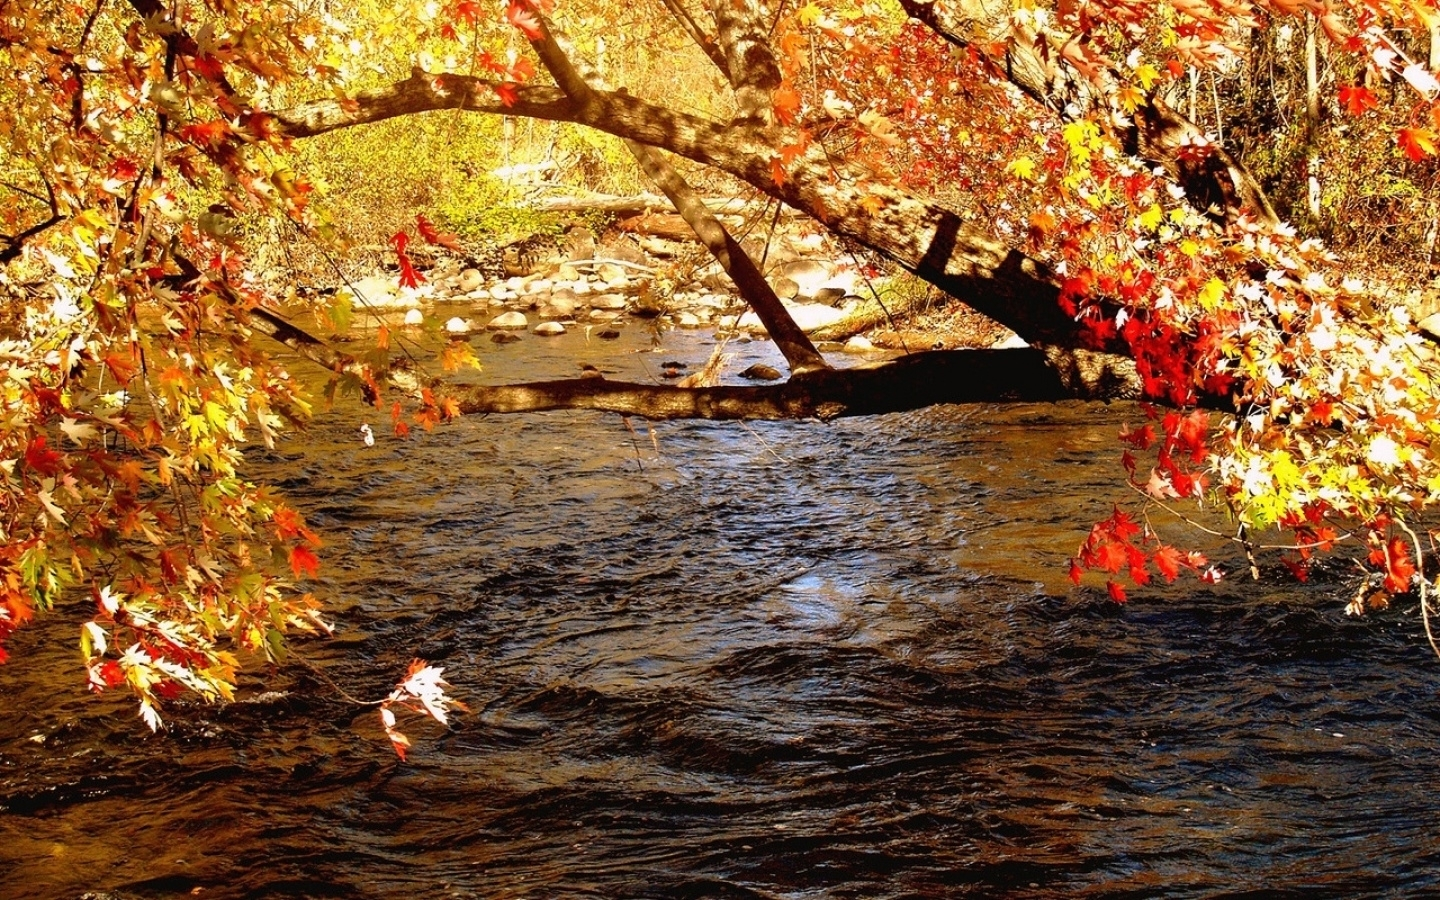 27098 download wallpaper Landscape, Rivers, Trees, Autumn screensavers and pictures for free